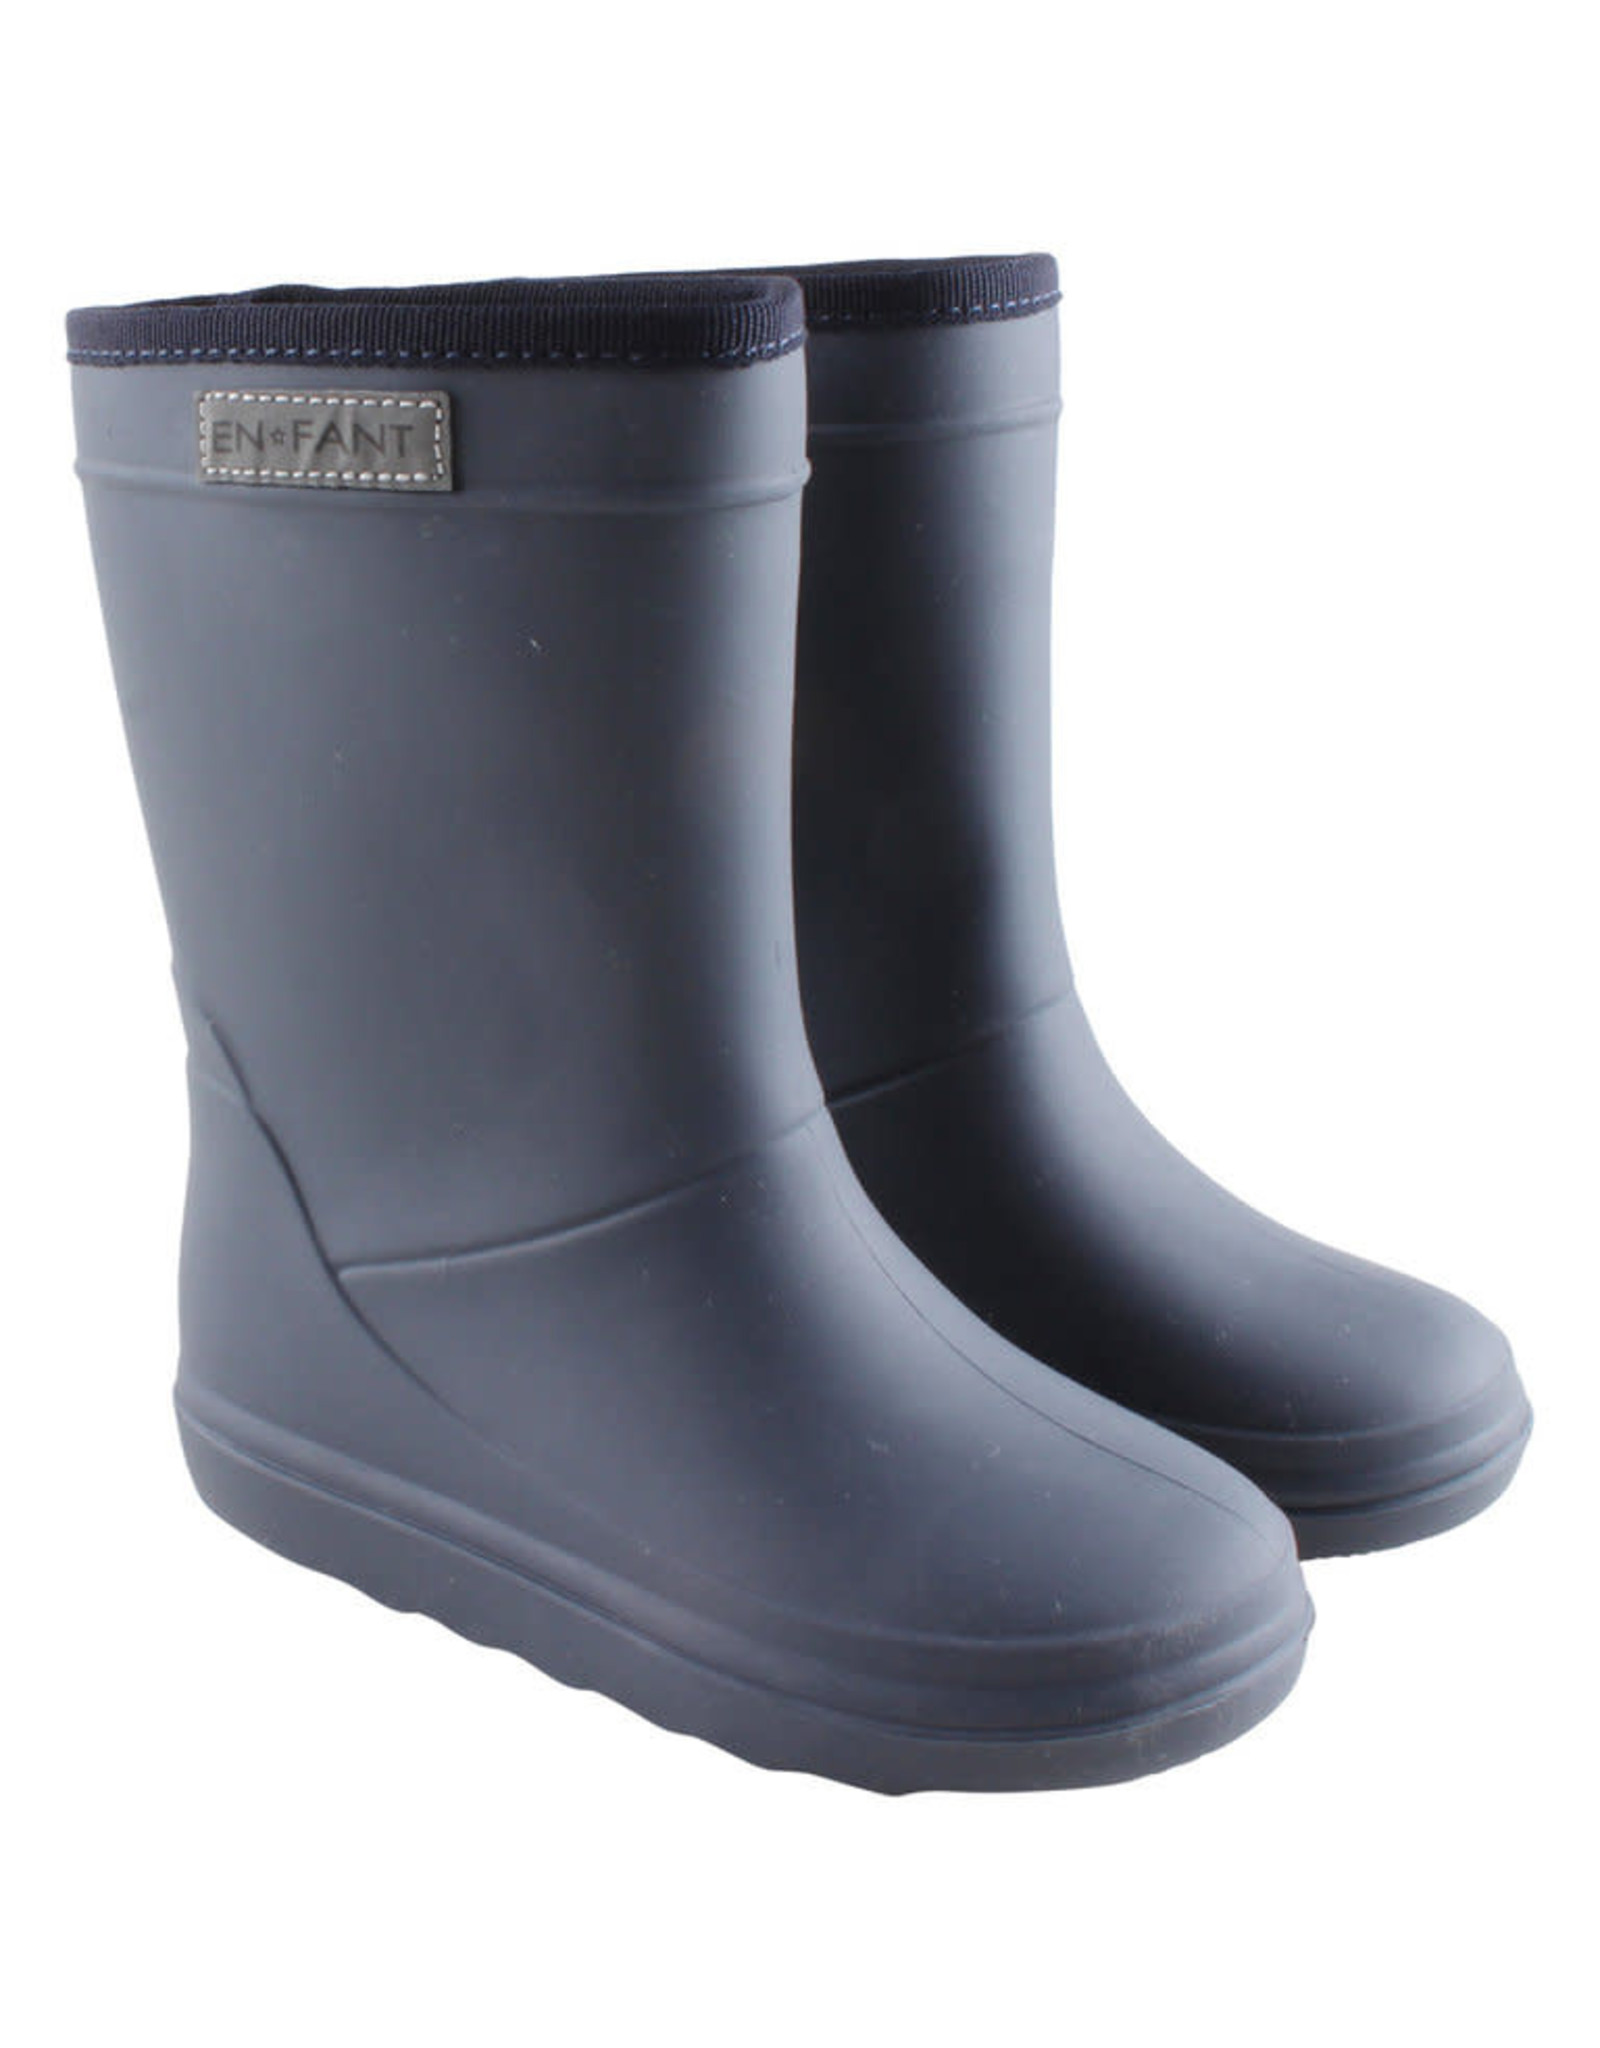 Enfant Thermo boot - Navy